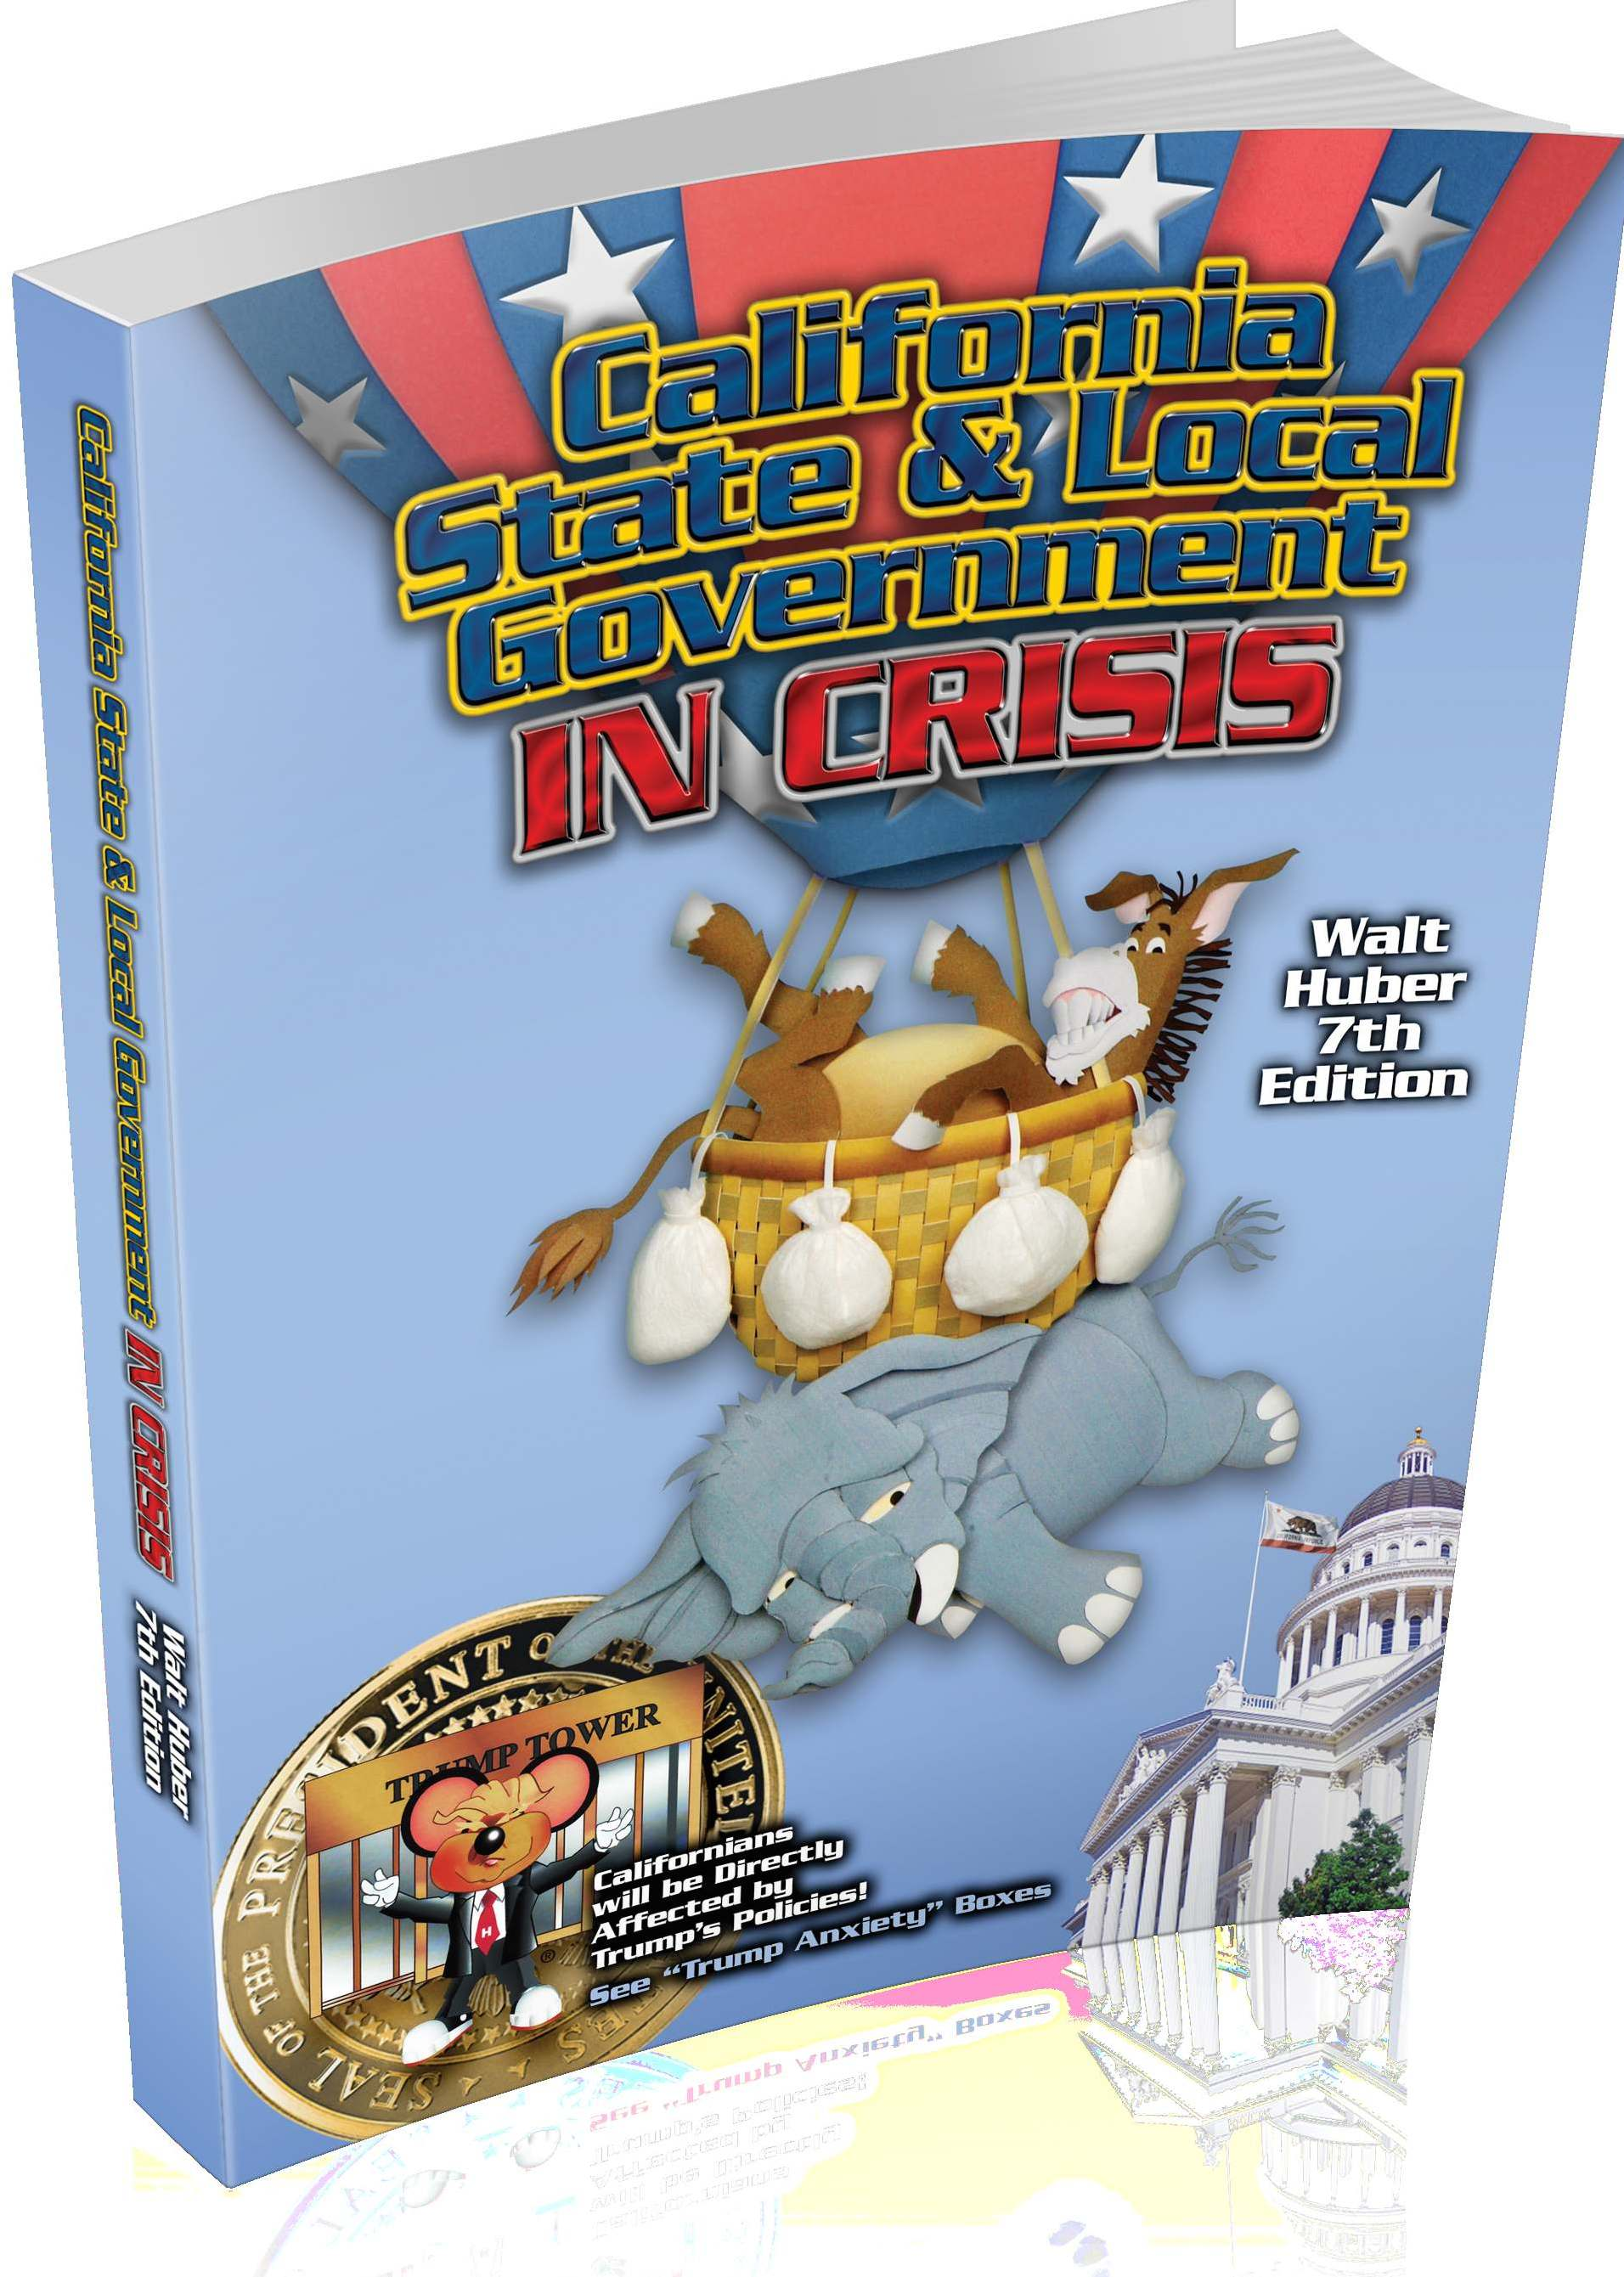 california in crisis 7th edition walt huber educational textbook company